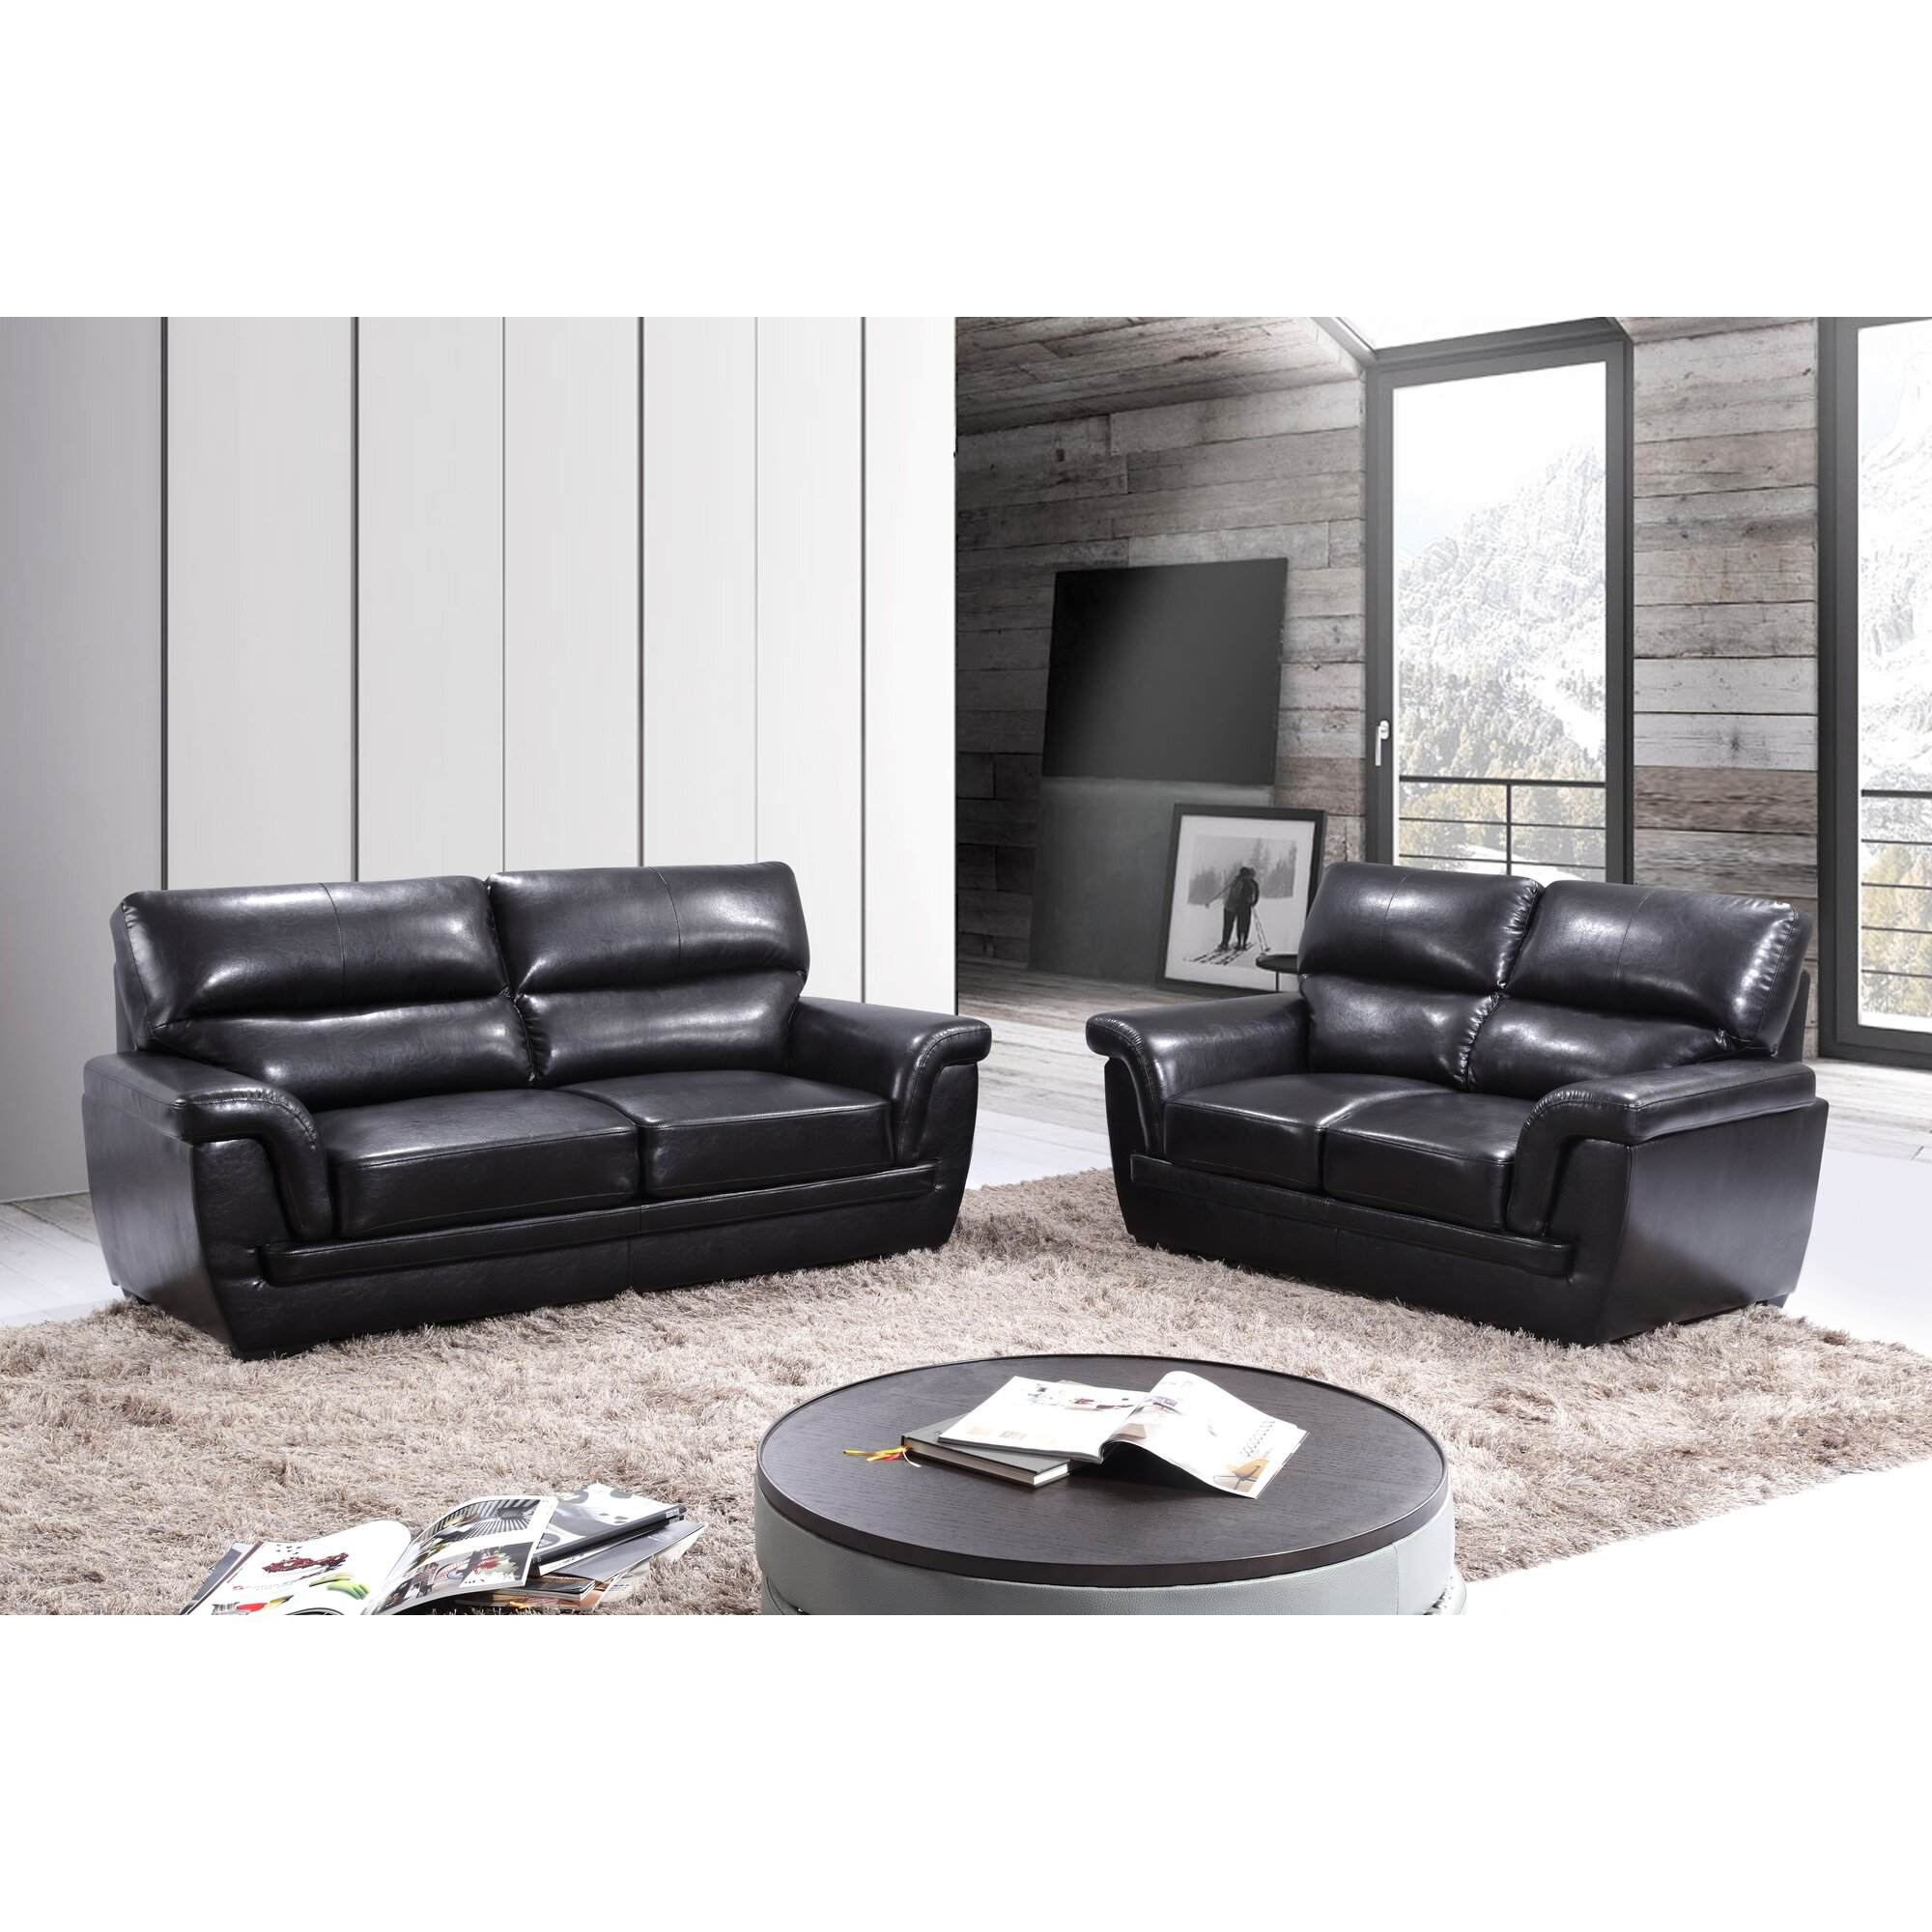 Andover mills annawan 2 piece leather living room set 2 piece leather living room set